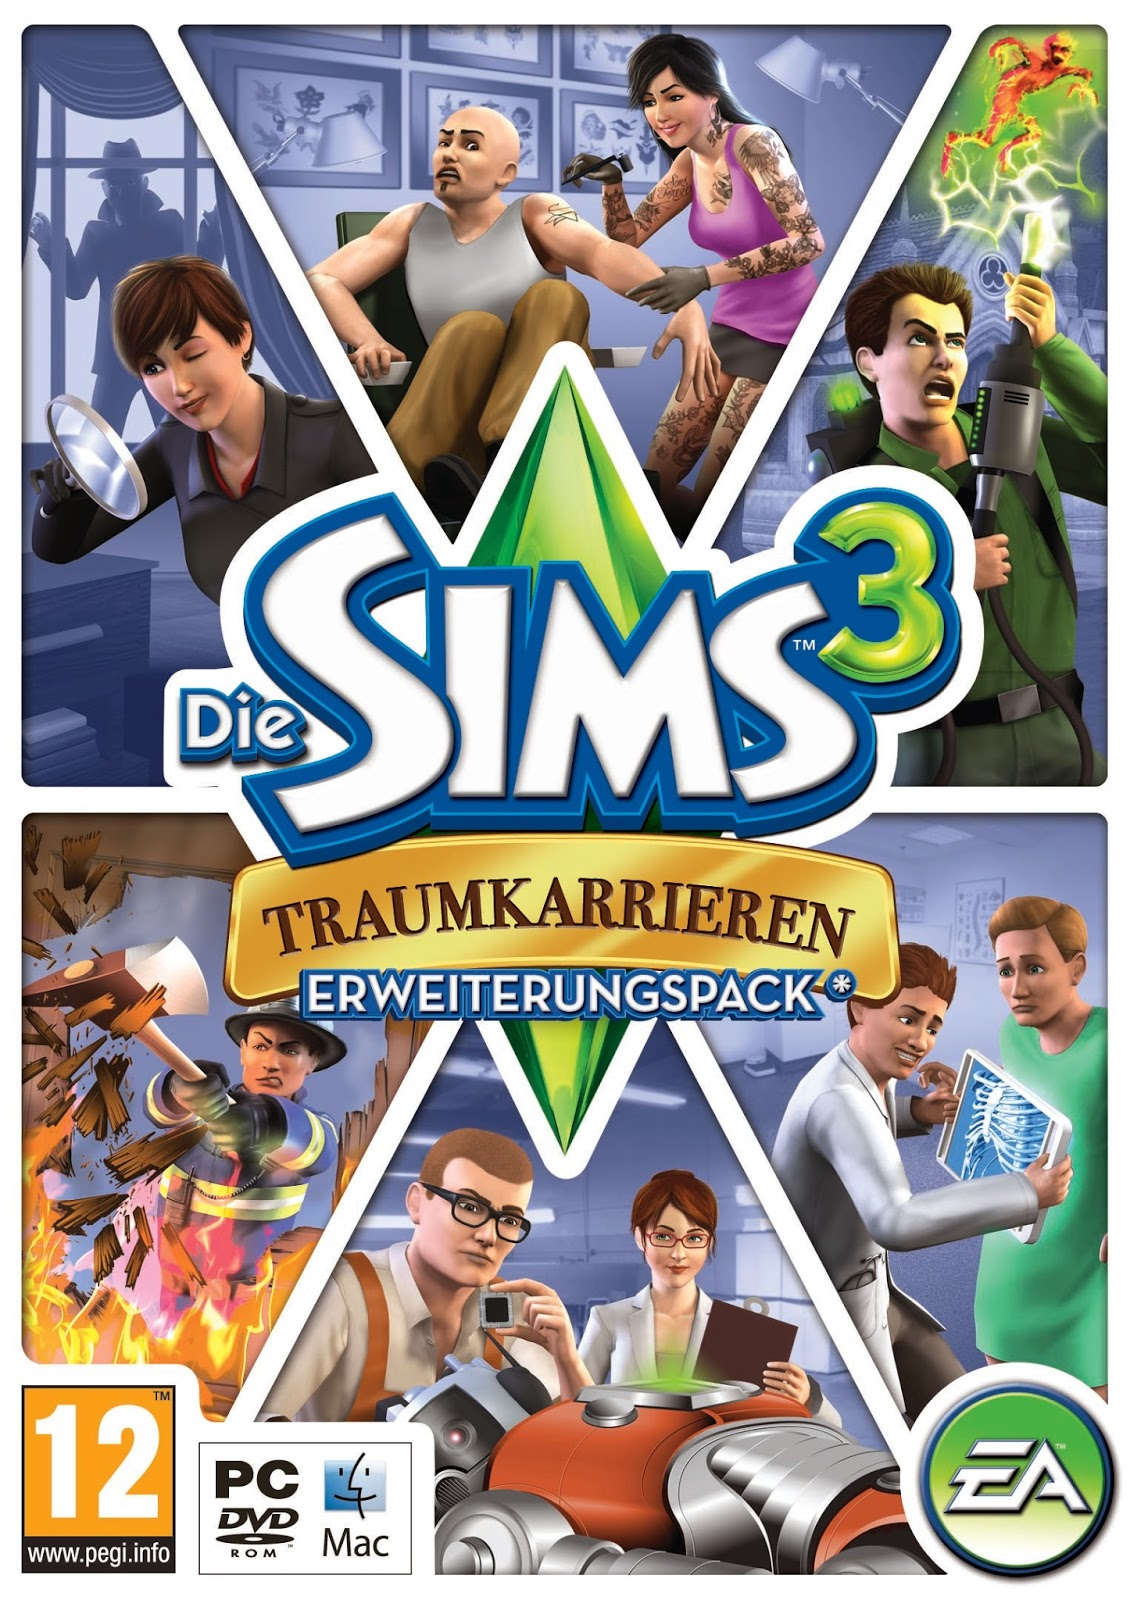 http://www.amazon.de/Die-Sims-Traumkarrieren-Add-Mac/dp/B003CFB06S/ref=sr_1_1?ie=UTF8&qid=1405947505&sr=8-1&keywords=Die+Sims+3+-+Traumkarrieren